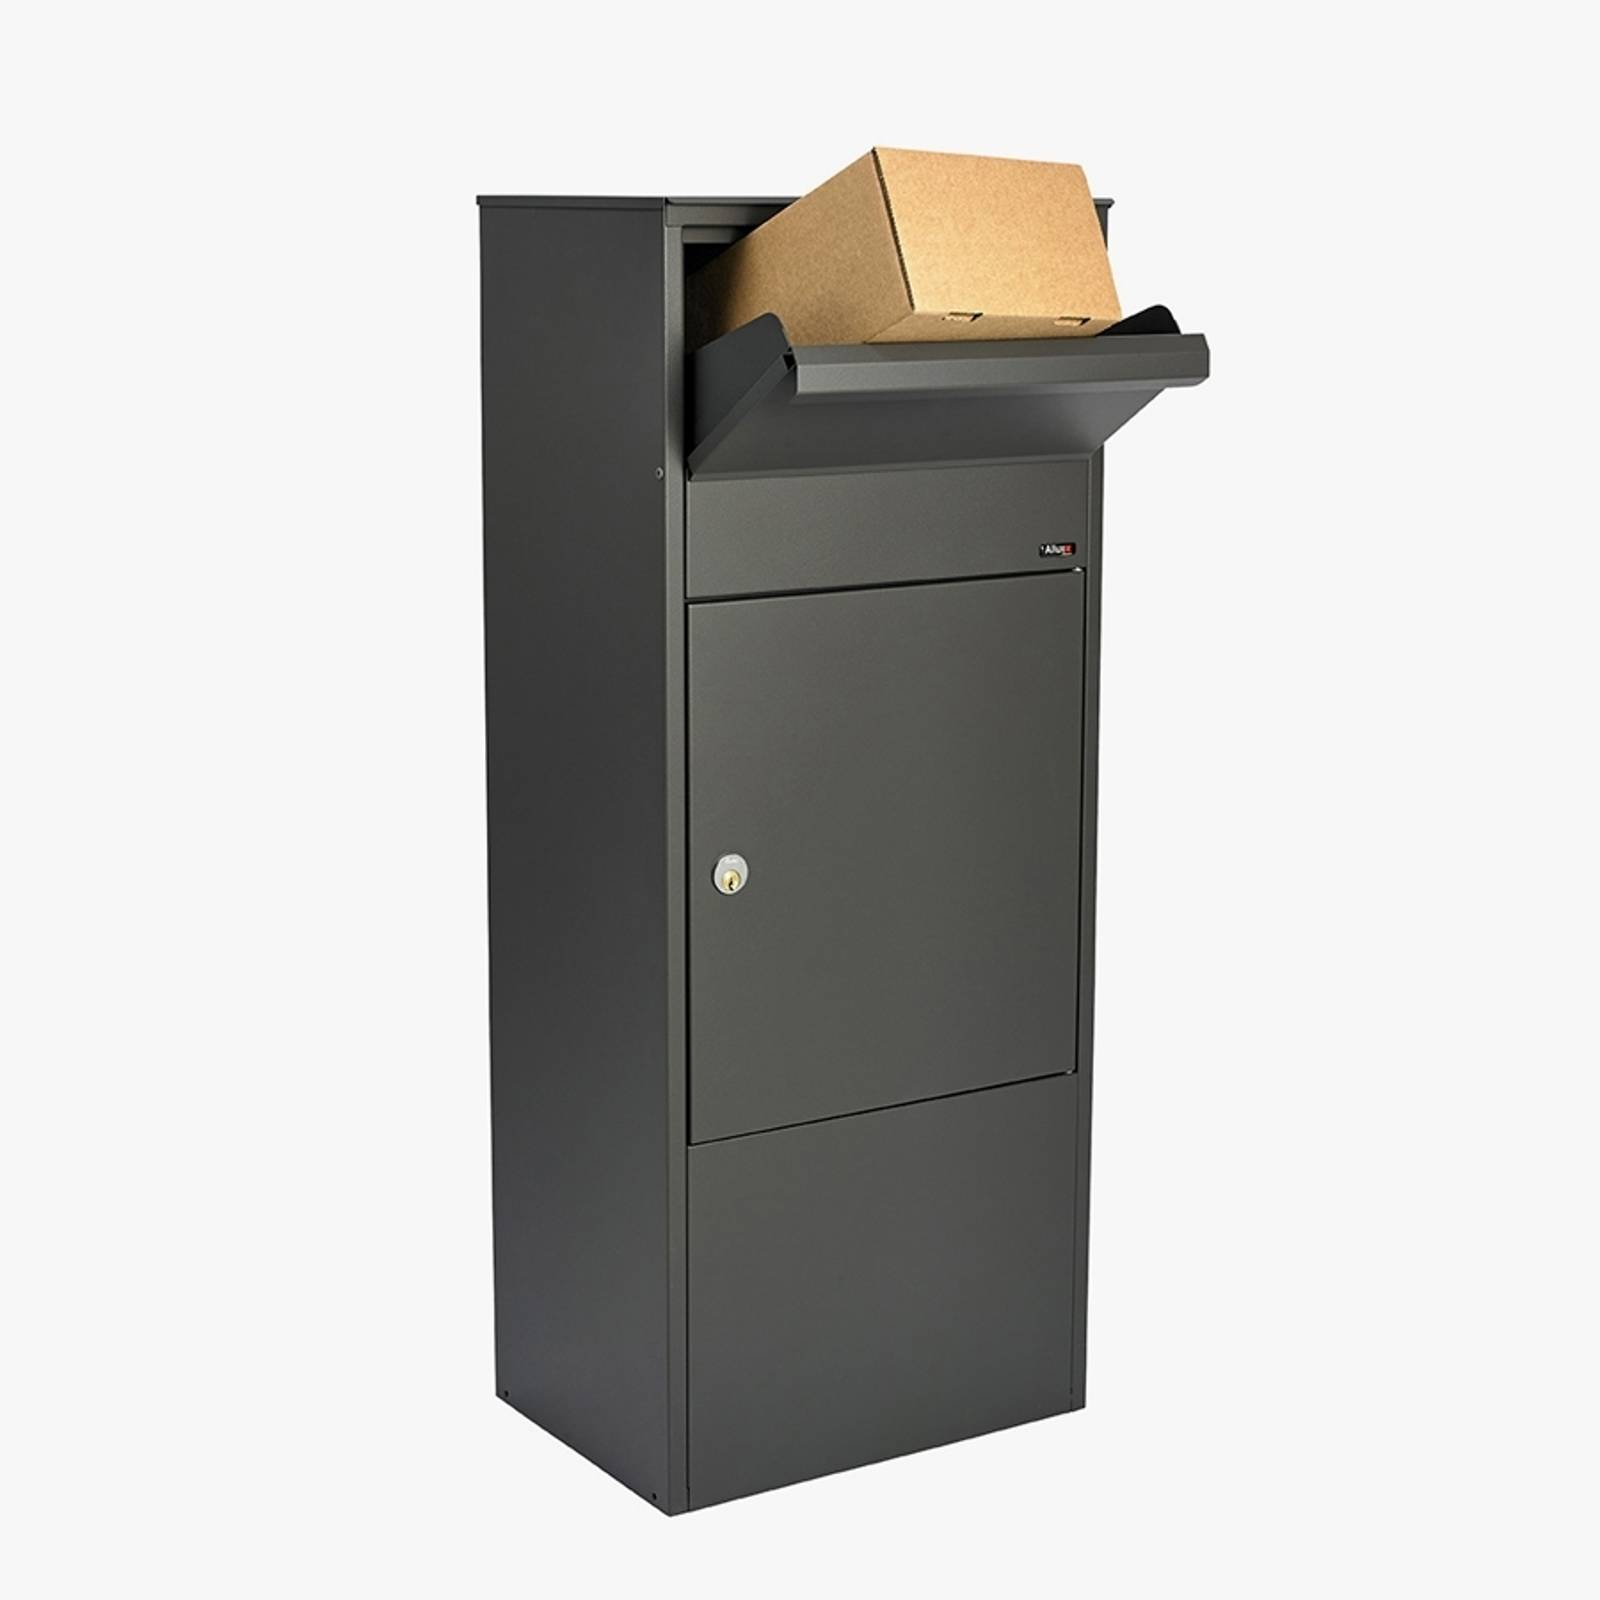 Large letter and parcel box 800, anthracite from Juliana